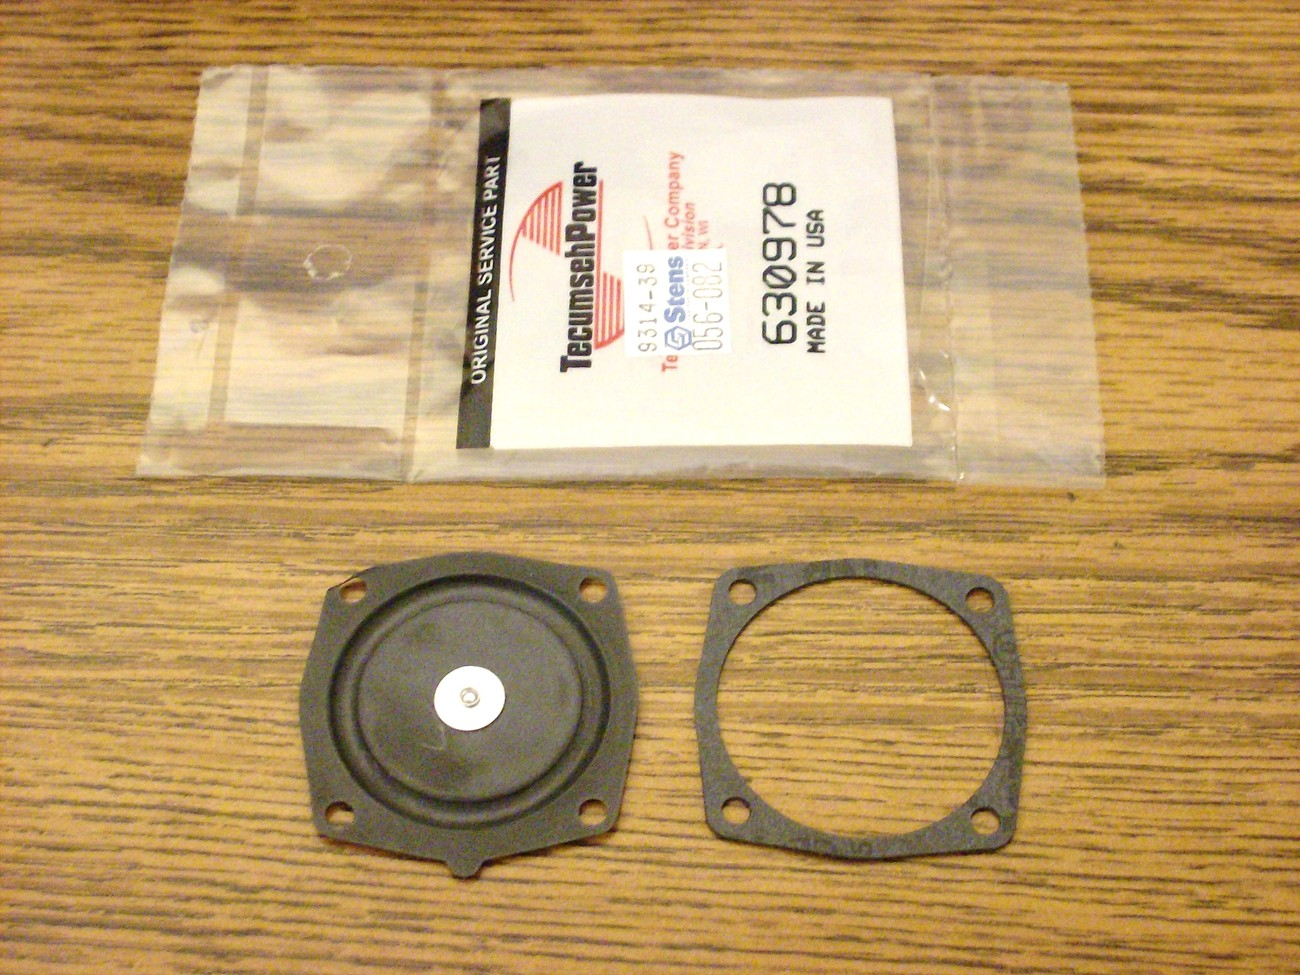 Tecumseh Carburetor Diaphragm Rebuild Kit And 50 Similar Items